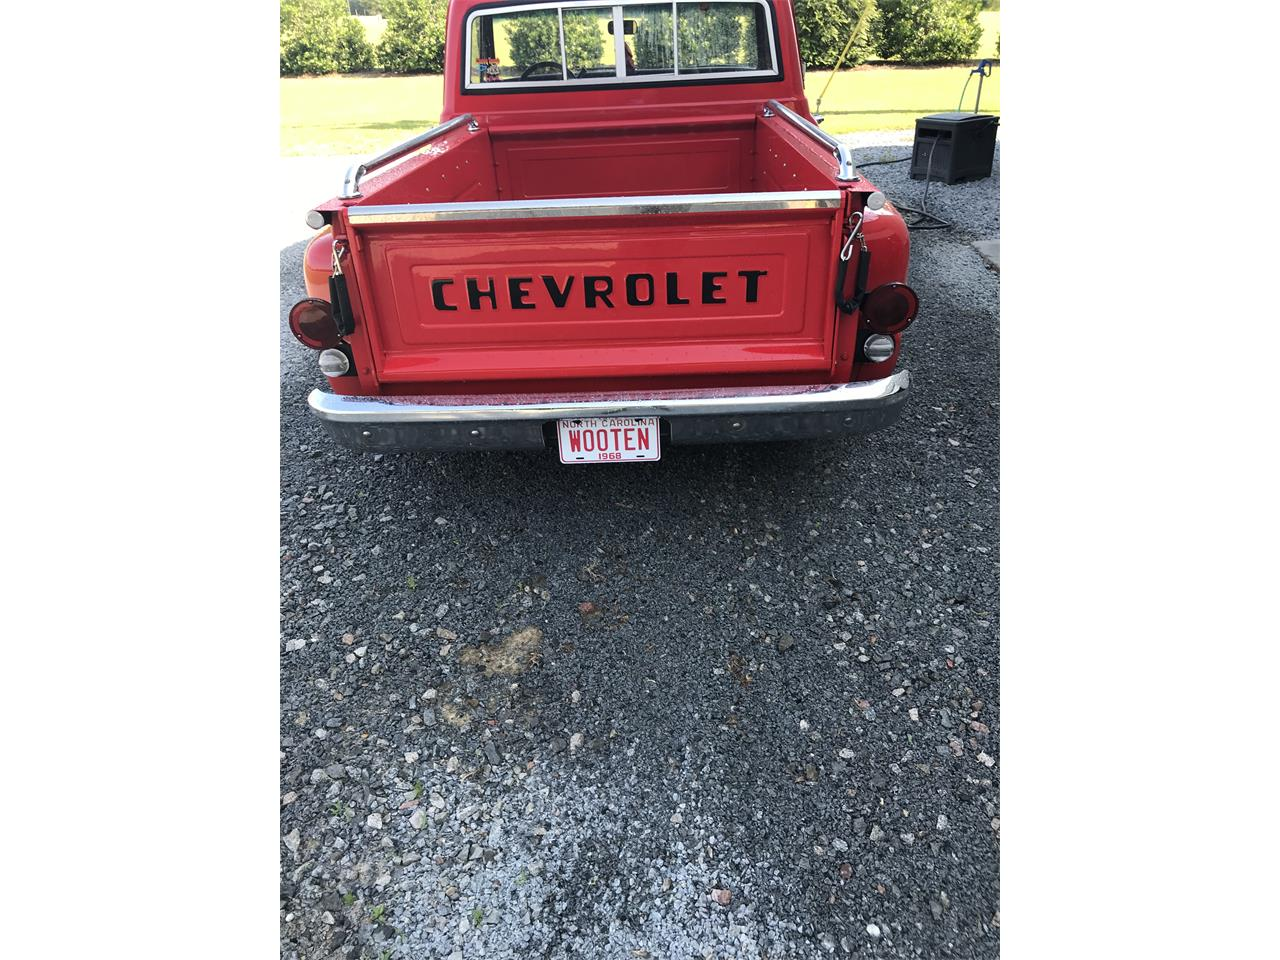 Large Picture of 1968 Chevrolet C10 located in Macclesfield North Carolina - $38,000.00 Offered by a Private Seller - Q46B